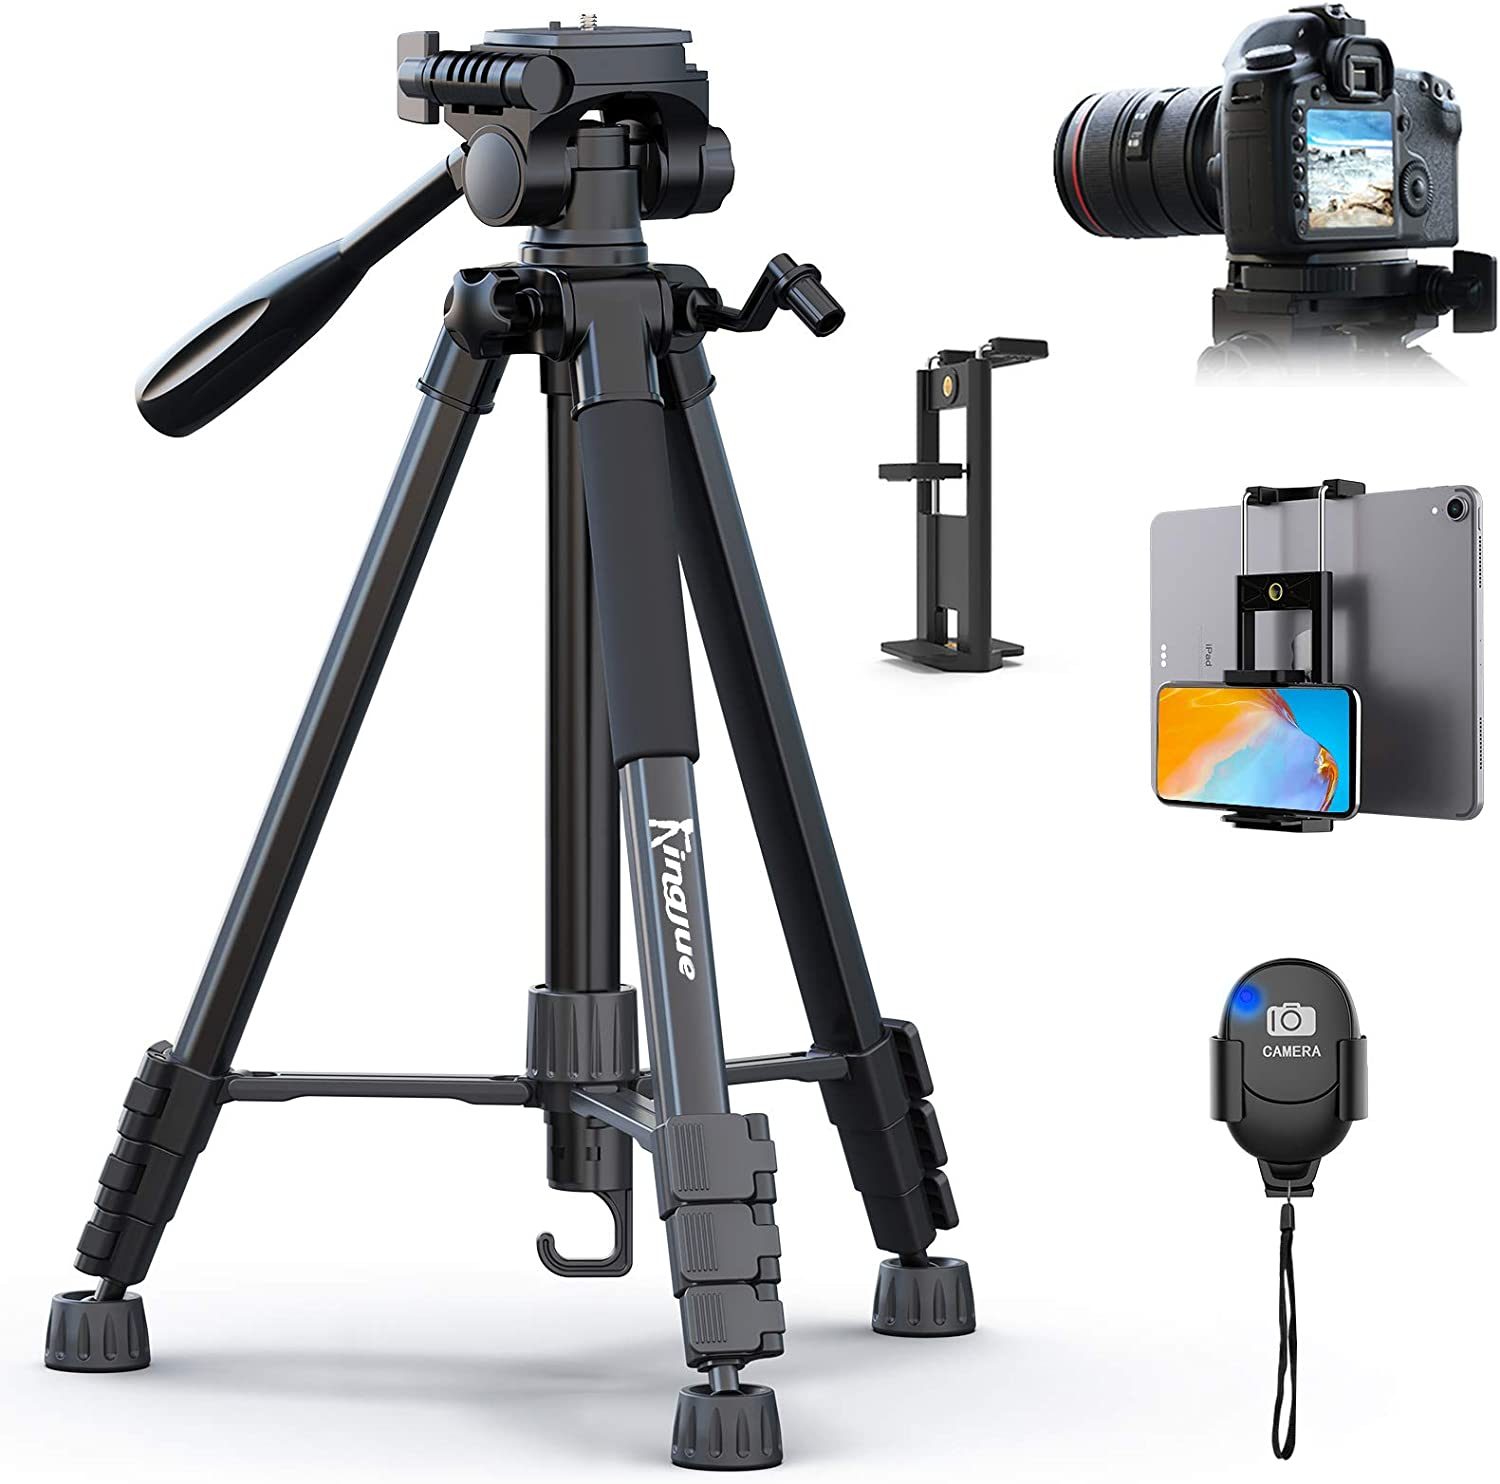 KINGJUE Camera Tripod for Canon Nikon 60 inch Lightweight Aluminum Travel DSLR Camera Stand with Universal Phone Tablet Holder Remote Shutter and Carry Bag